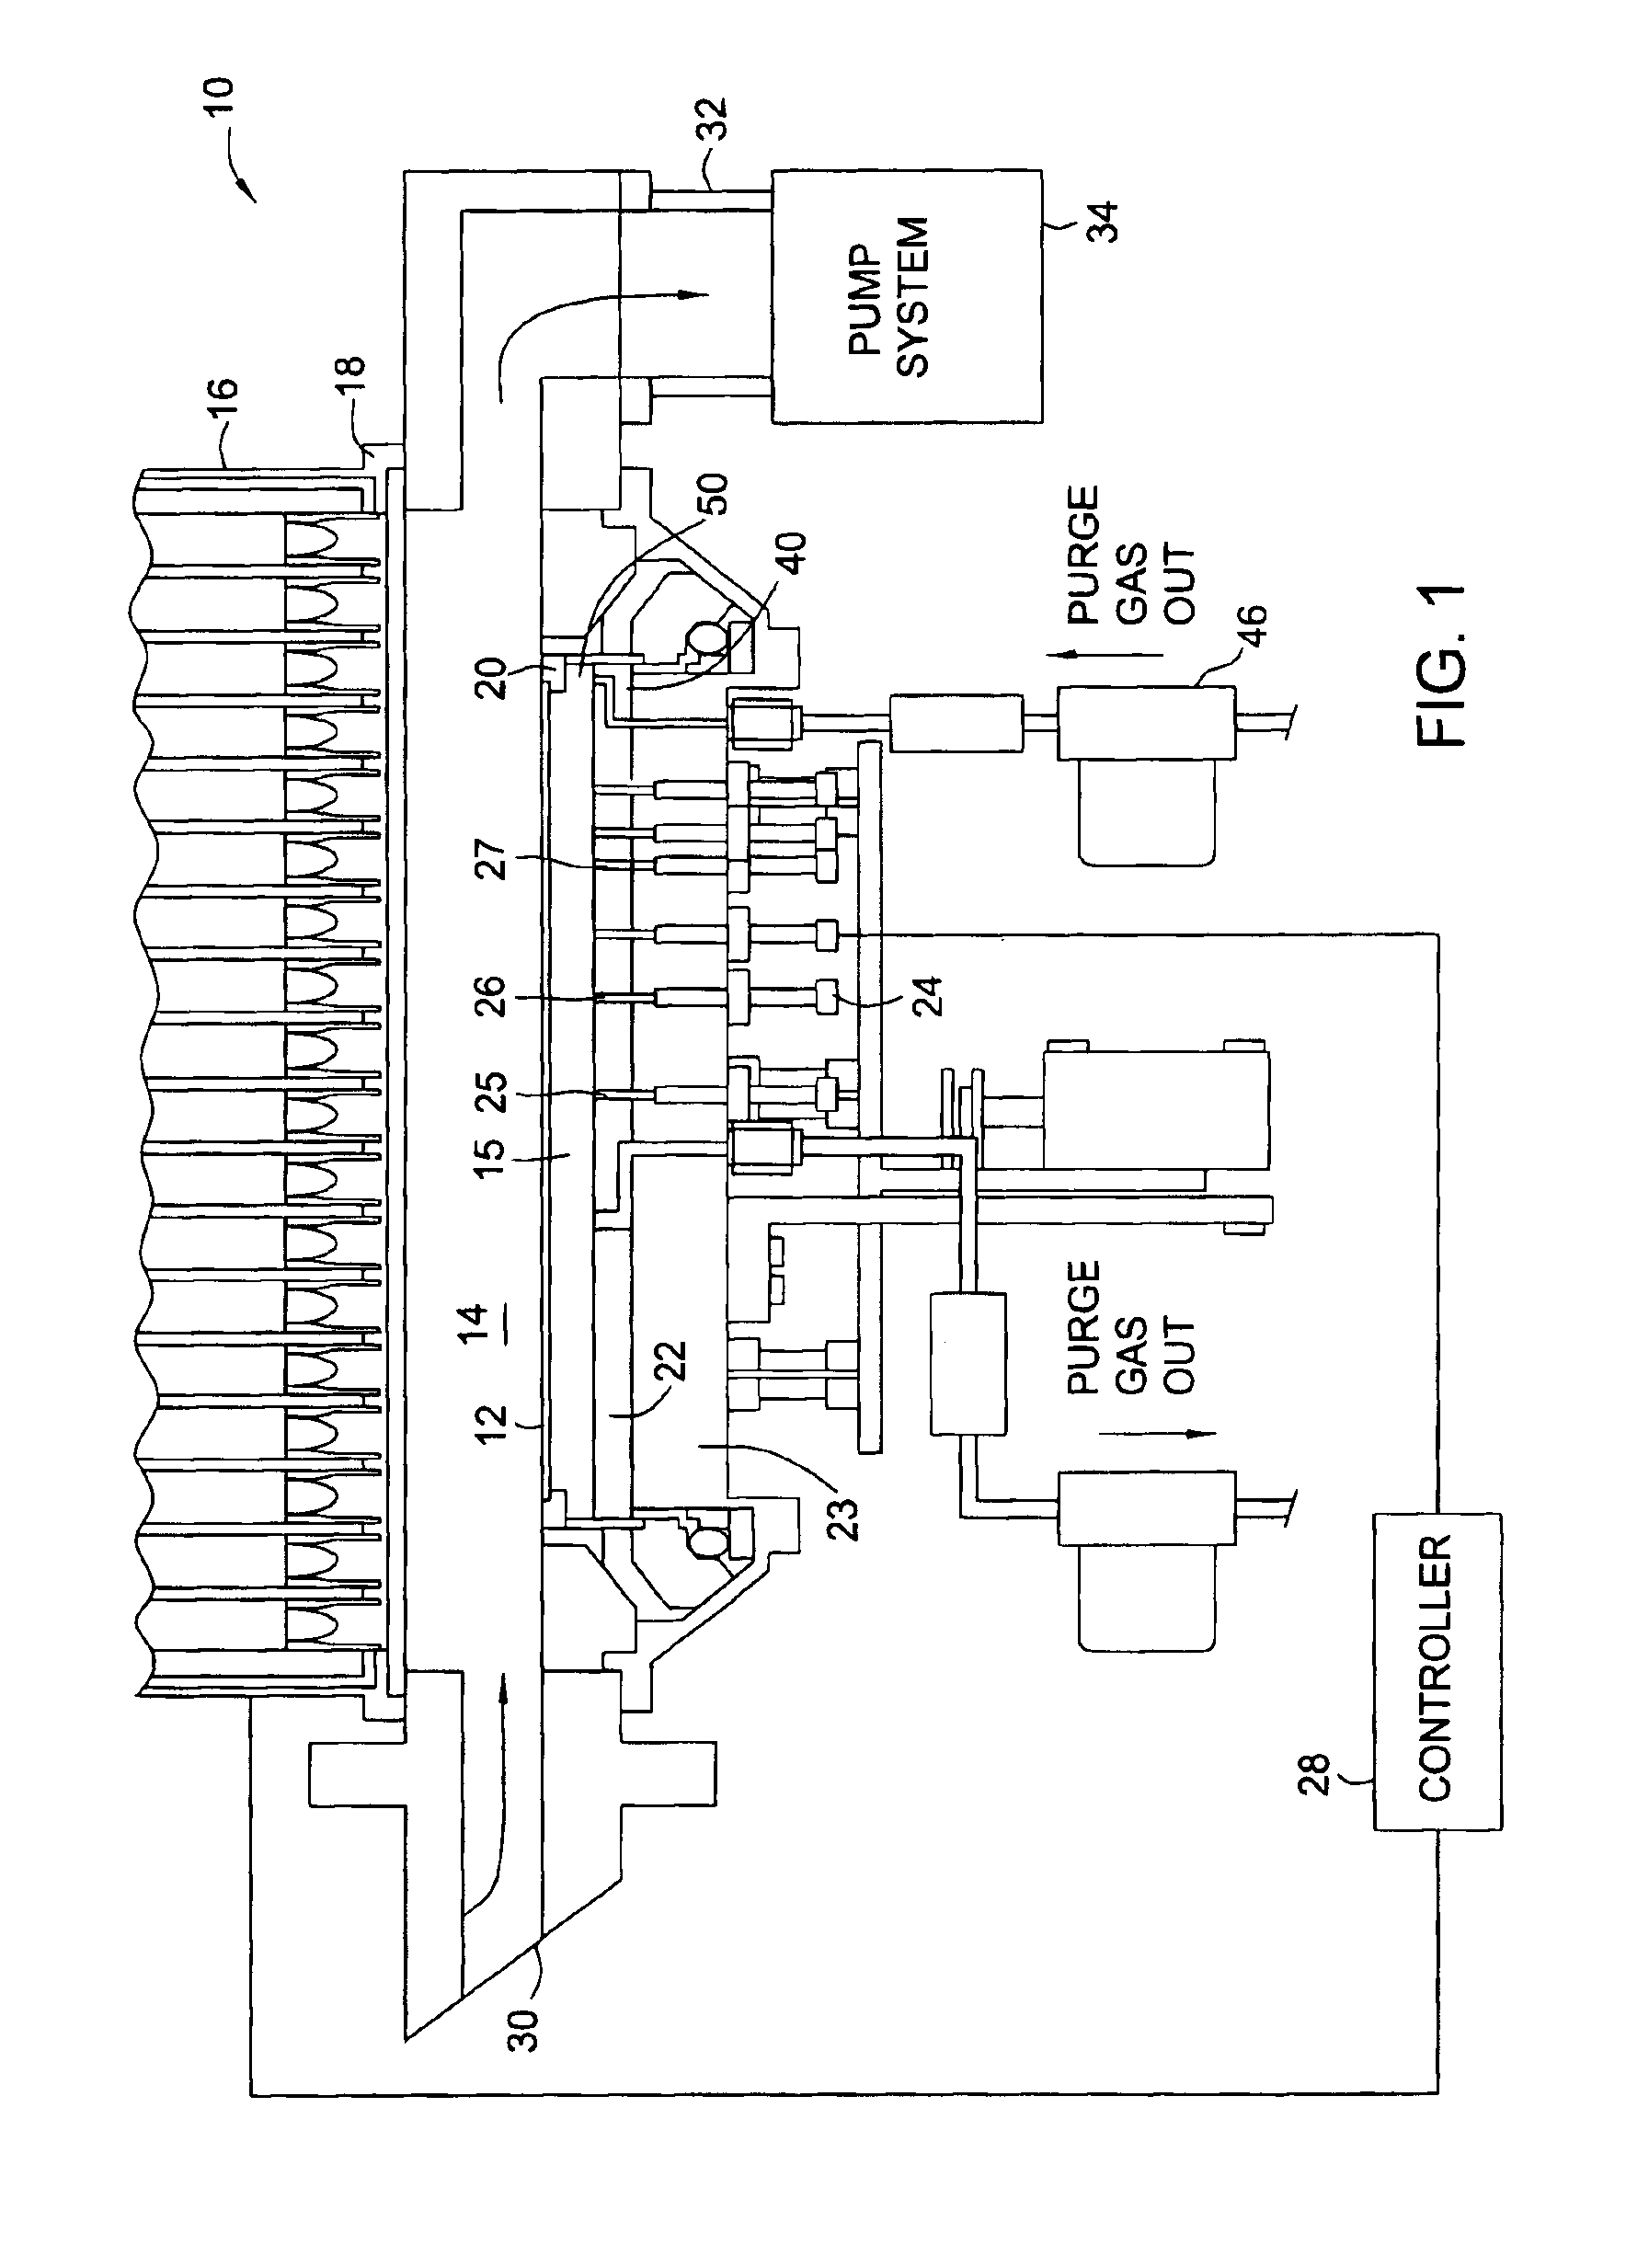 Patent Us6897131 Advances In Spike Anneal Processes For Ultra Re How Do I Control A Mosfet With An Optical Reflector Drawing